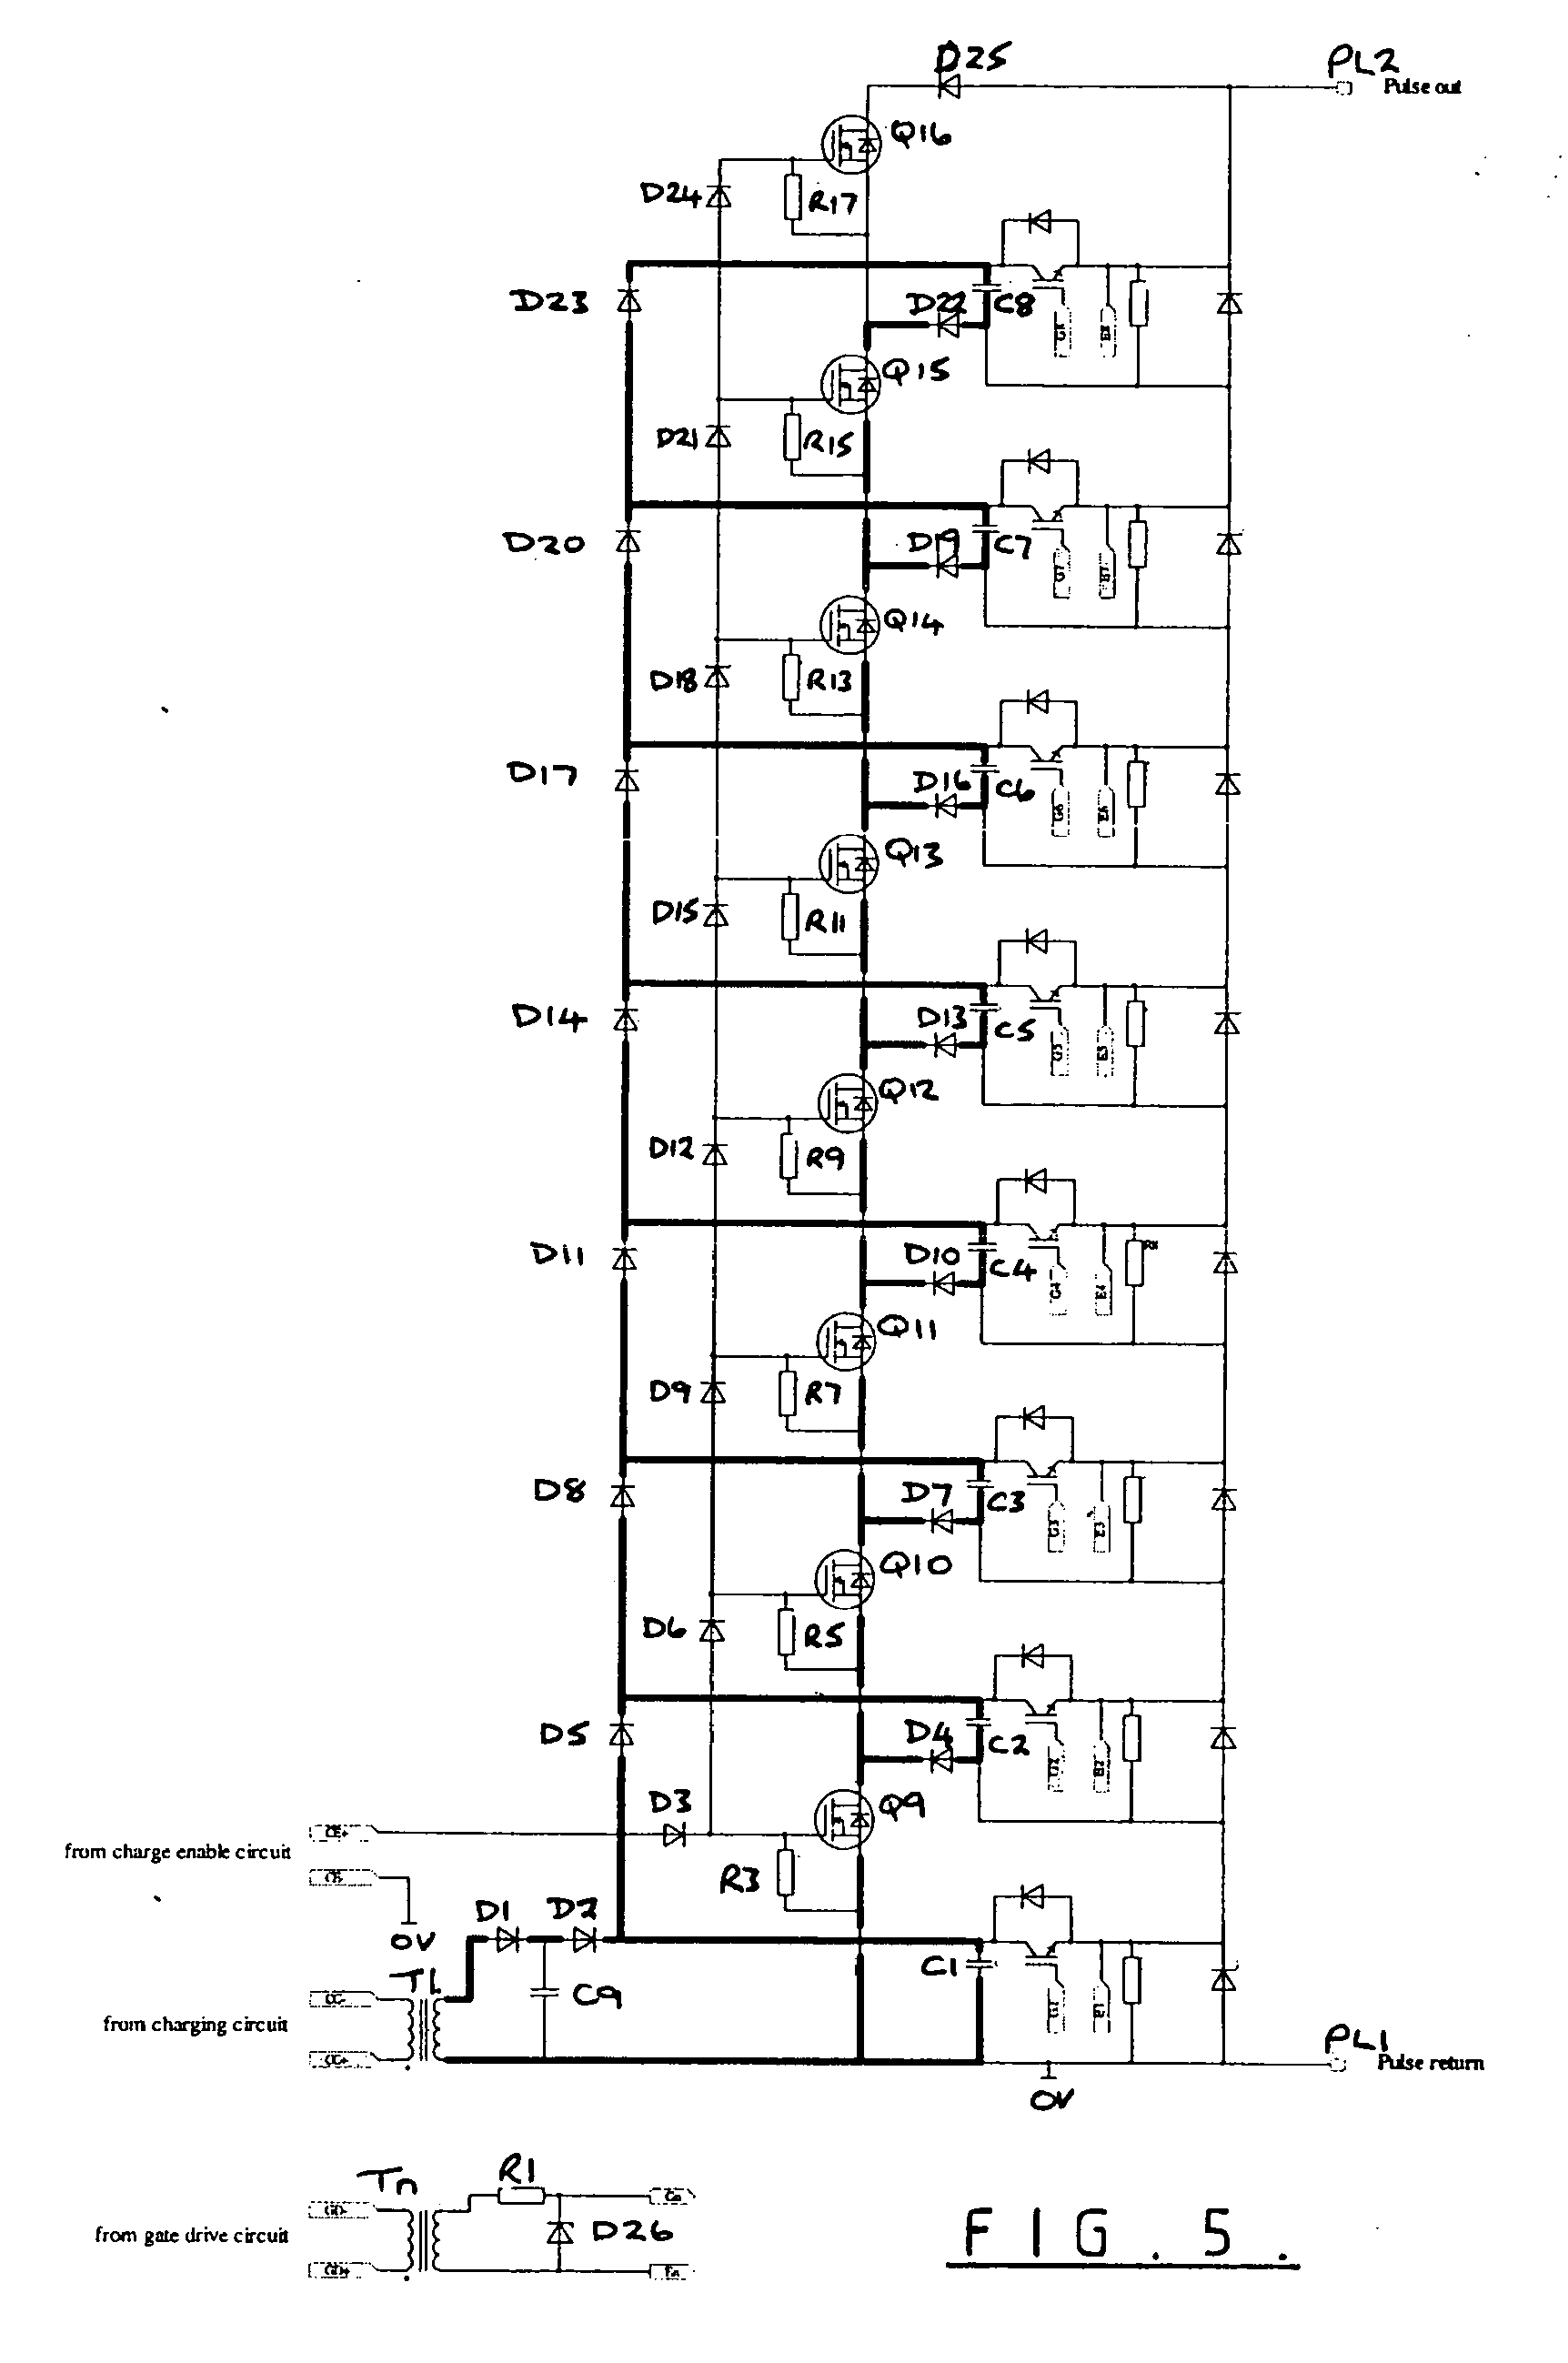 patent ep a2 an electric fence energiser google patents